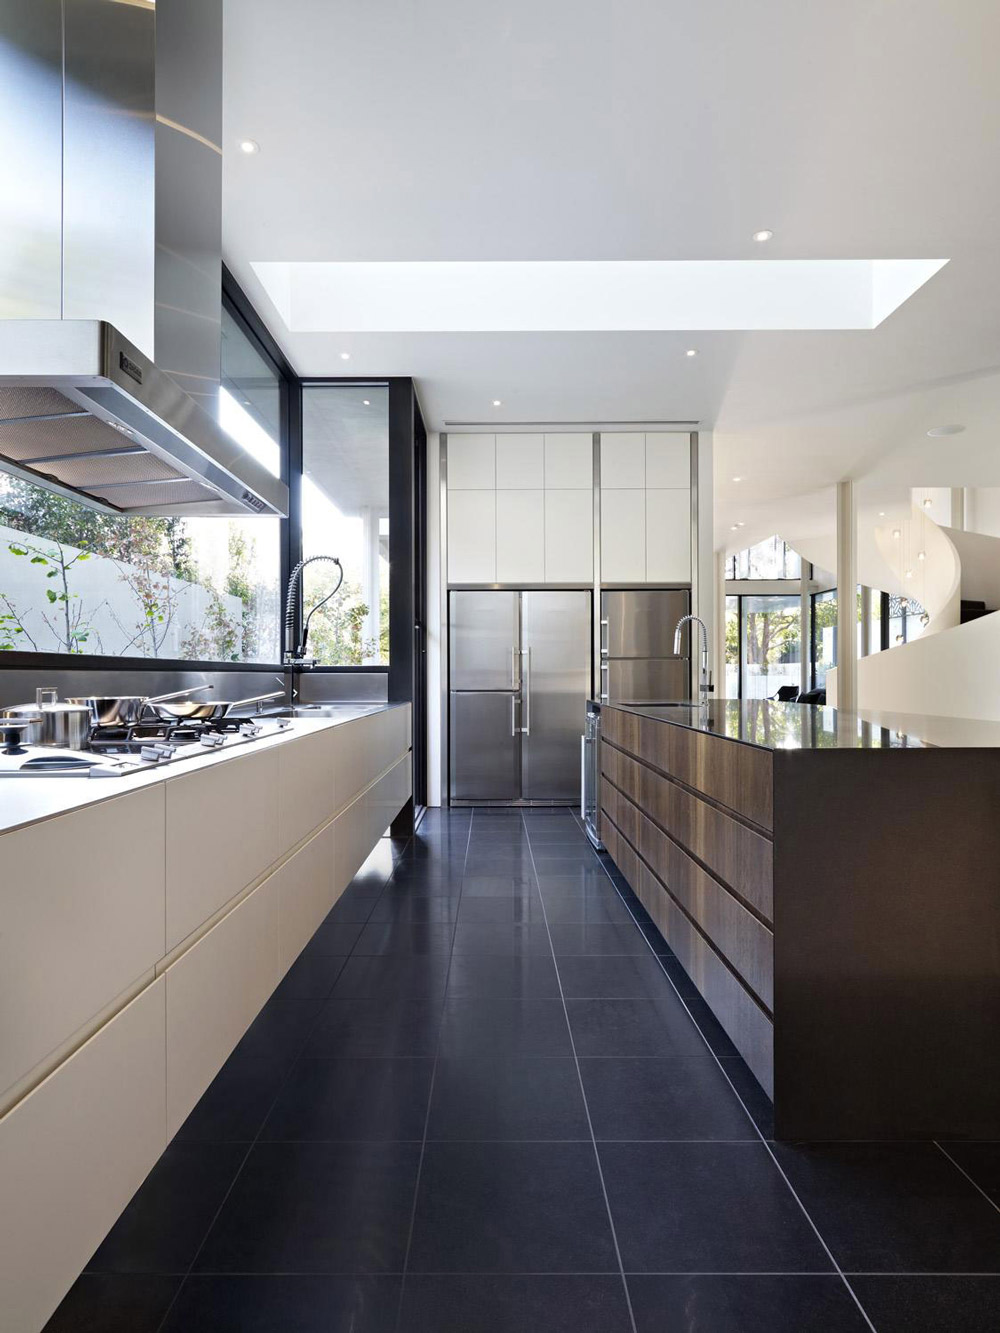 Verdant avenue home in melbourne australia by robert for Modern kitchen design australia